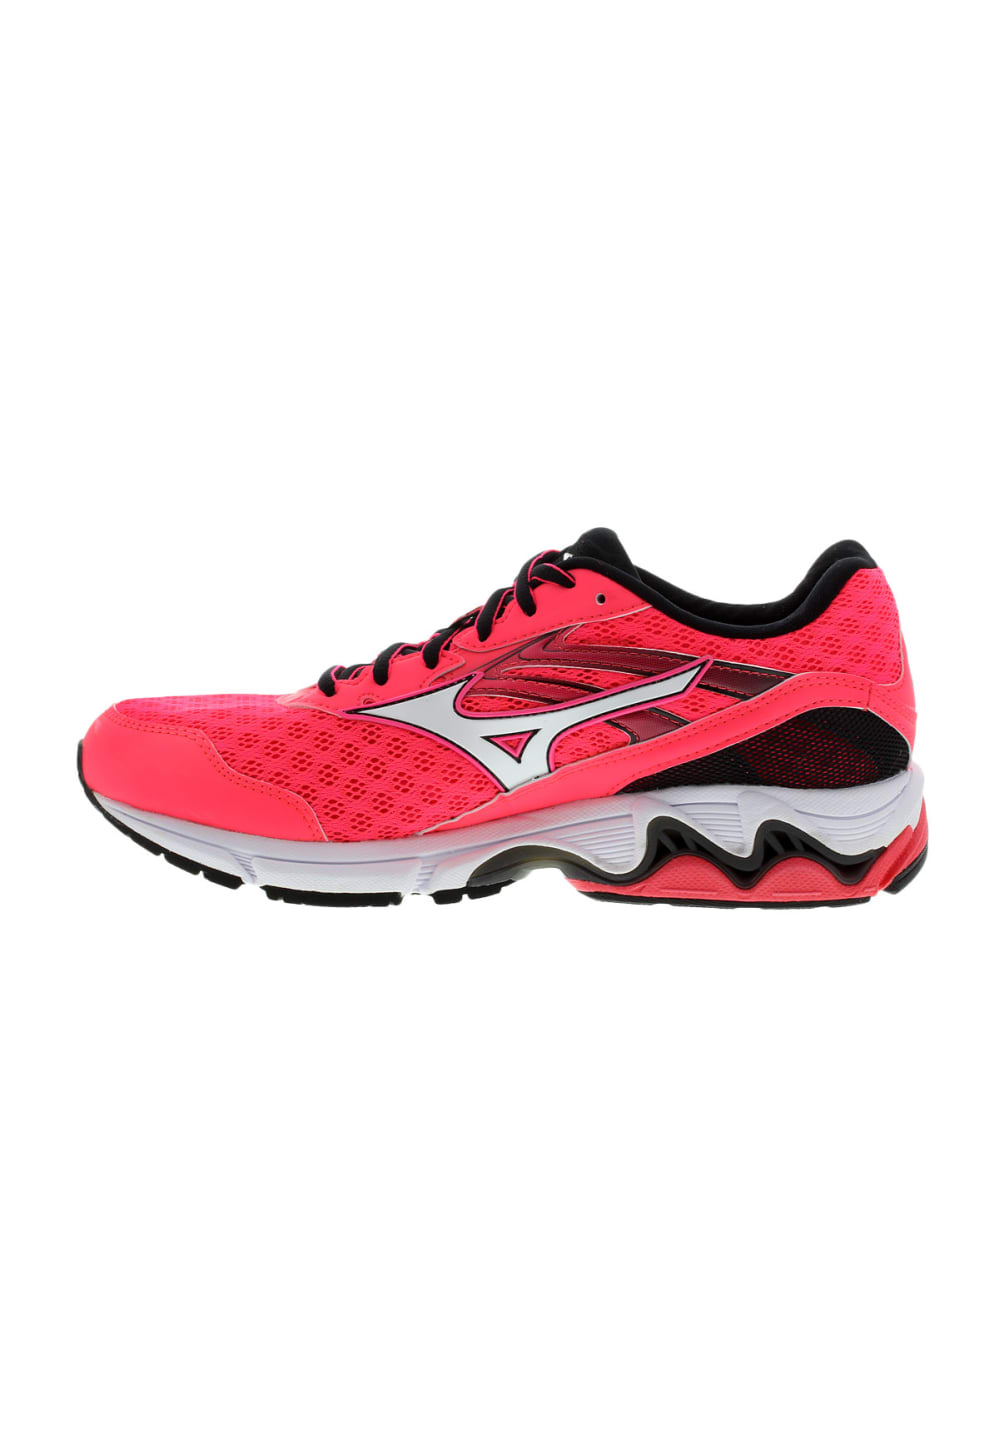 a86f0fed9bbb Next. Mizuno. Wave Inspire 12 - Running shoes for Women. €139.95. incl.  VAT, plus shipping costs